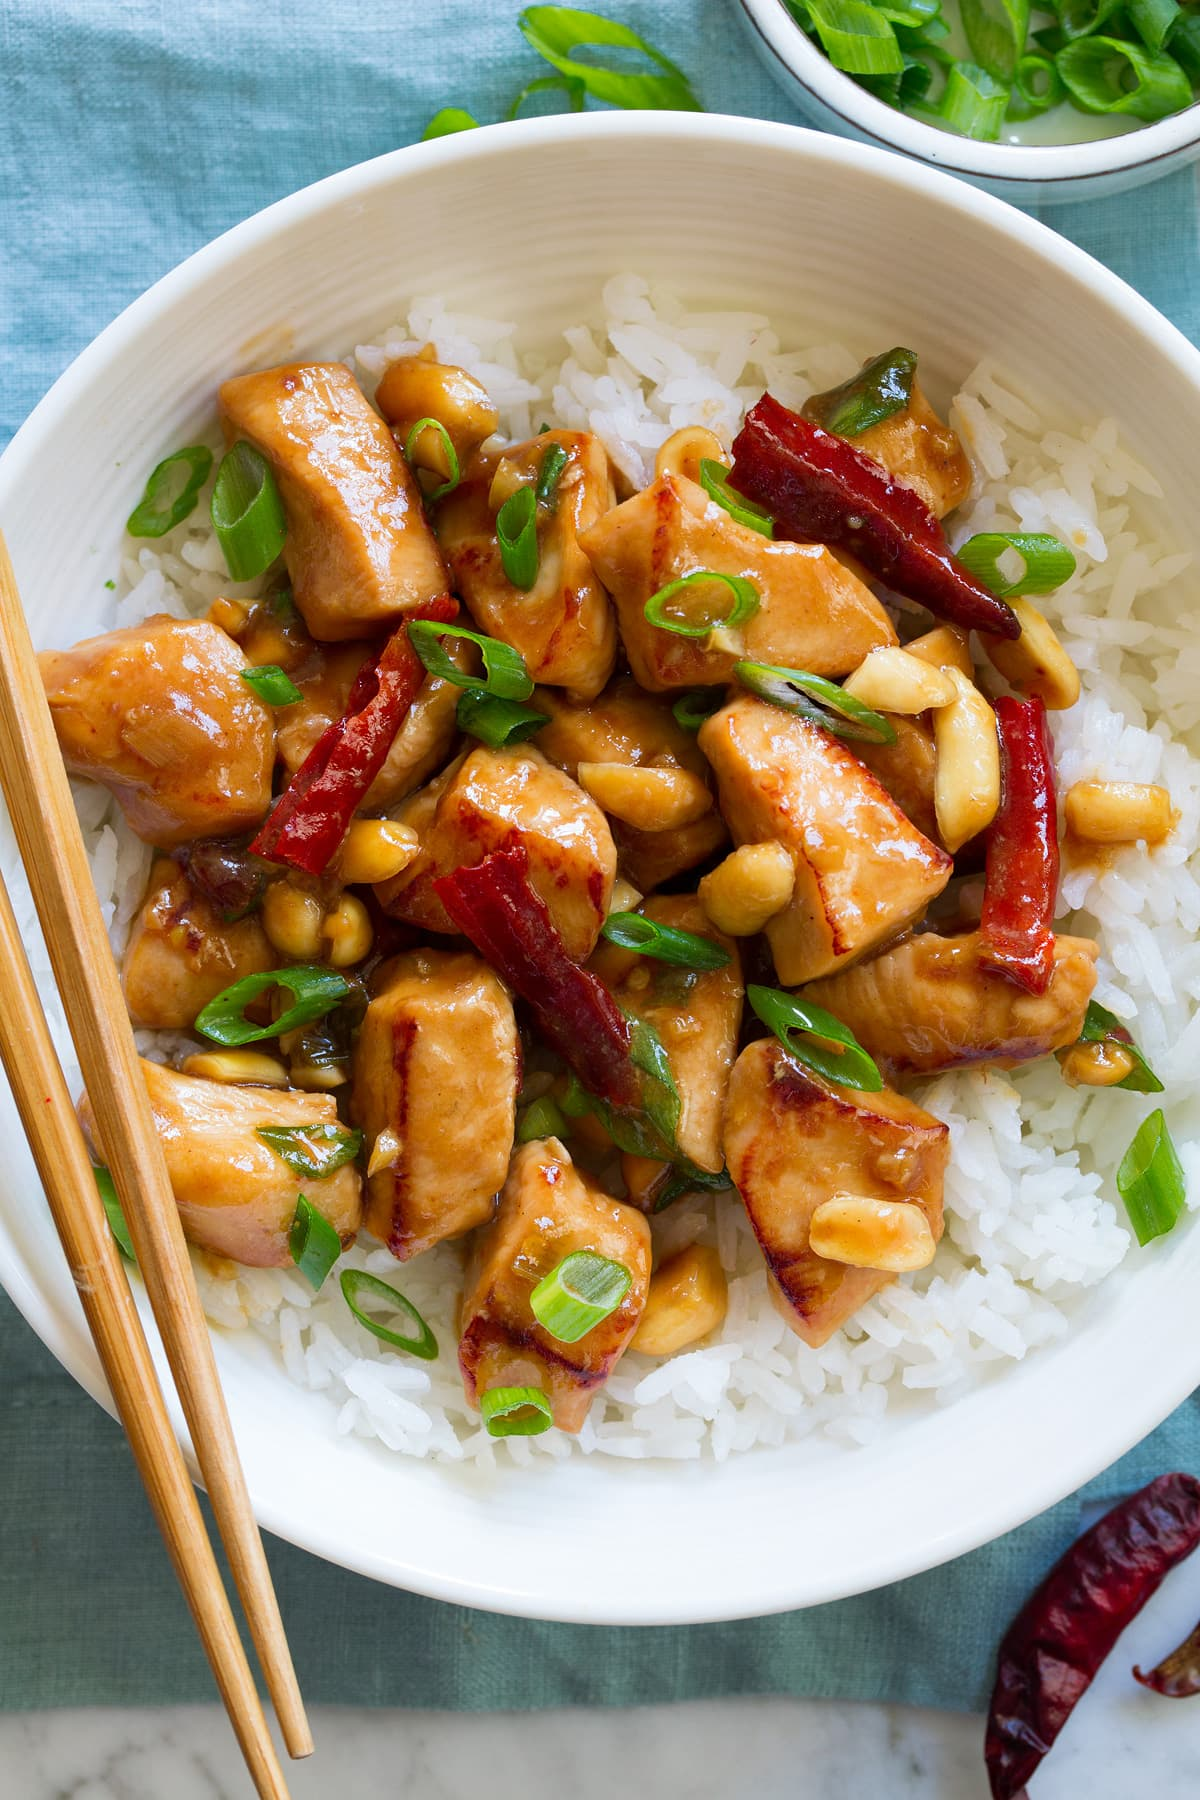 Overhead image of white bowl filled with rice topped with kung pao chicken. Chop sticks are shown to the side.